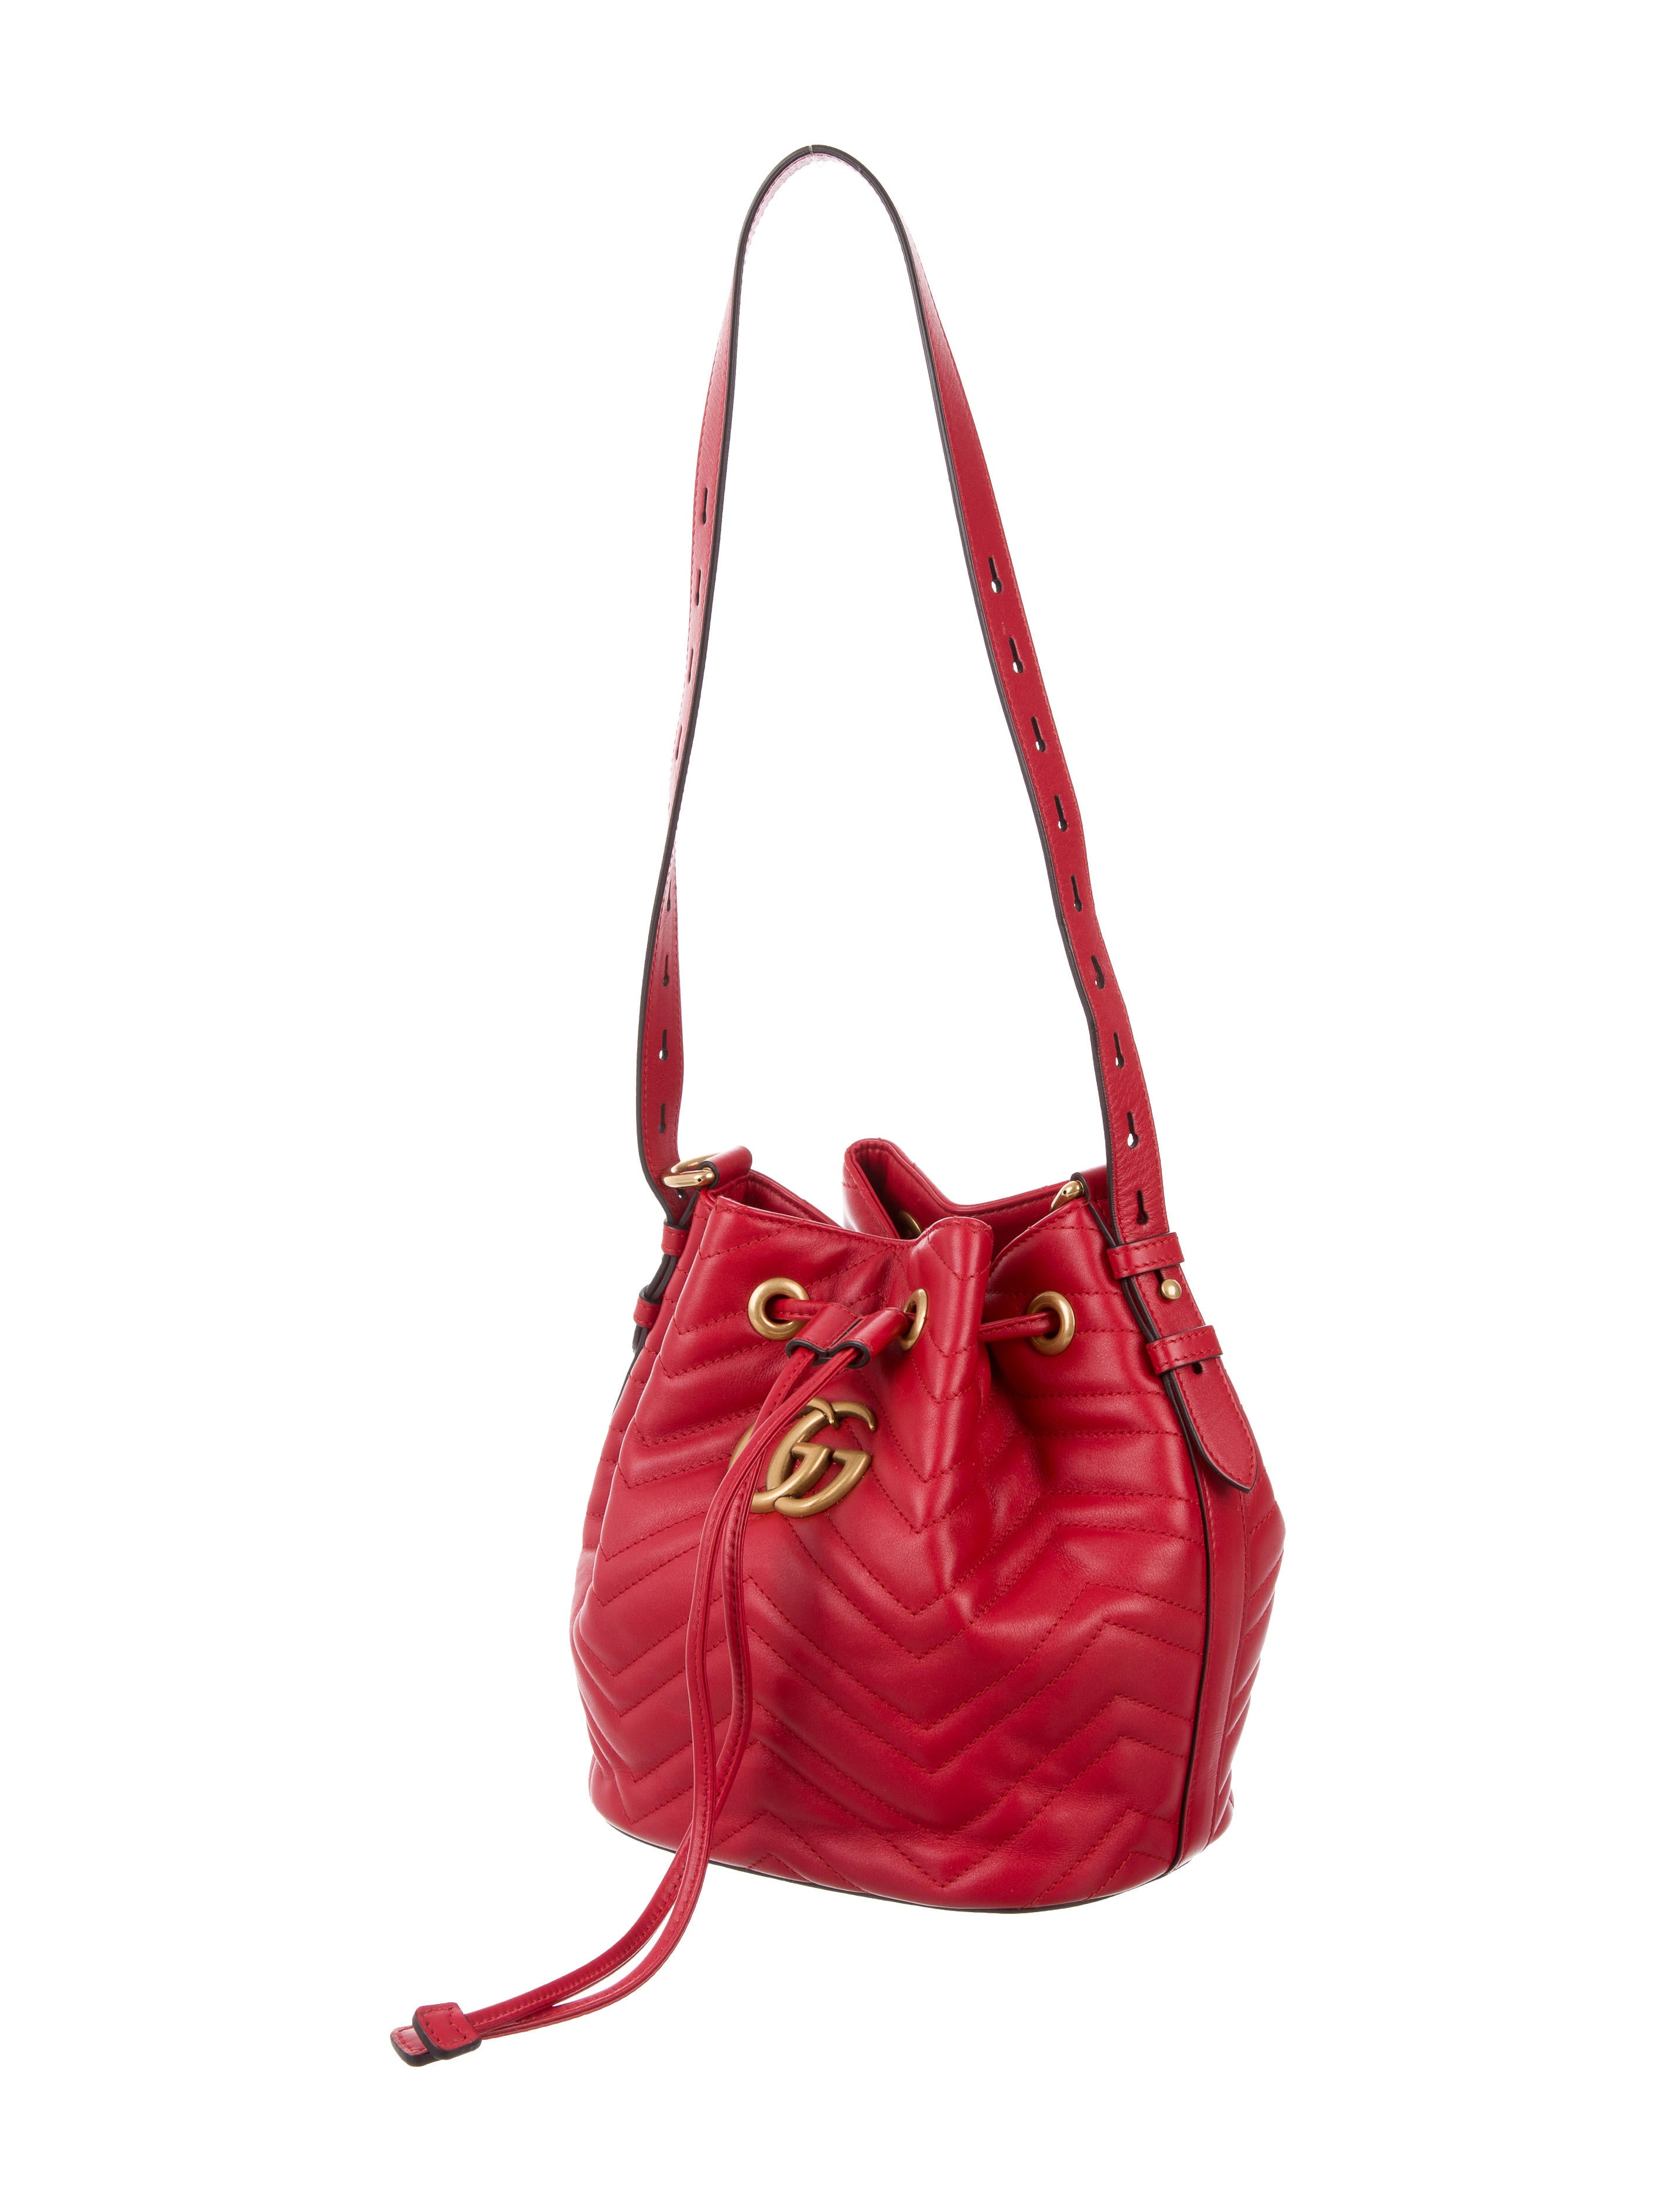 21455f90453eb0 Gucci Marmont Quilted Leather Bucket bag - Handbags - GUC168458 | The  RealReal